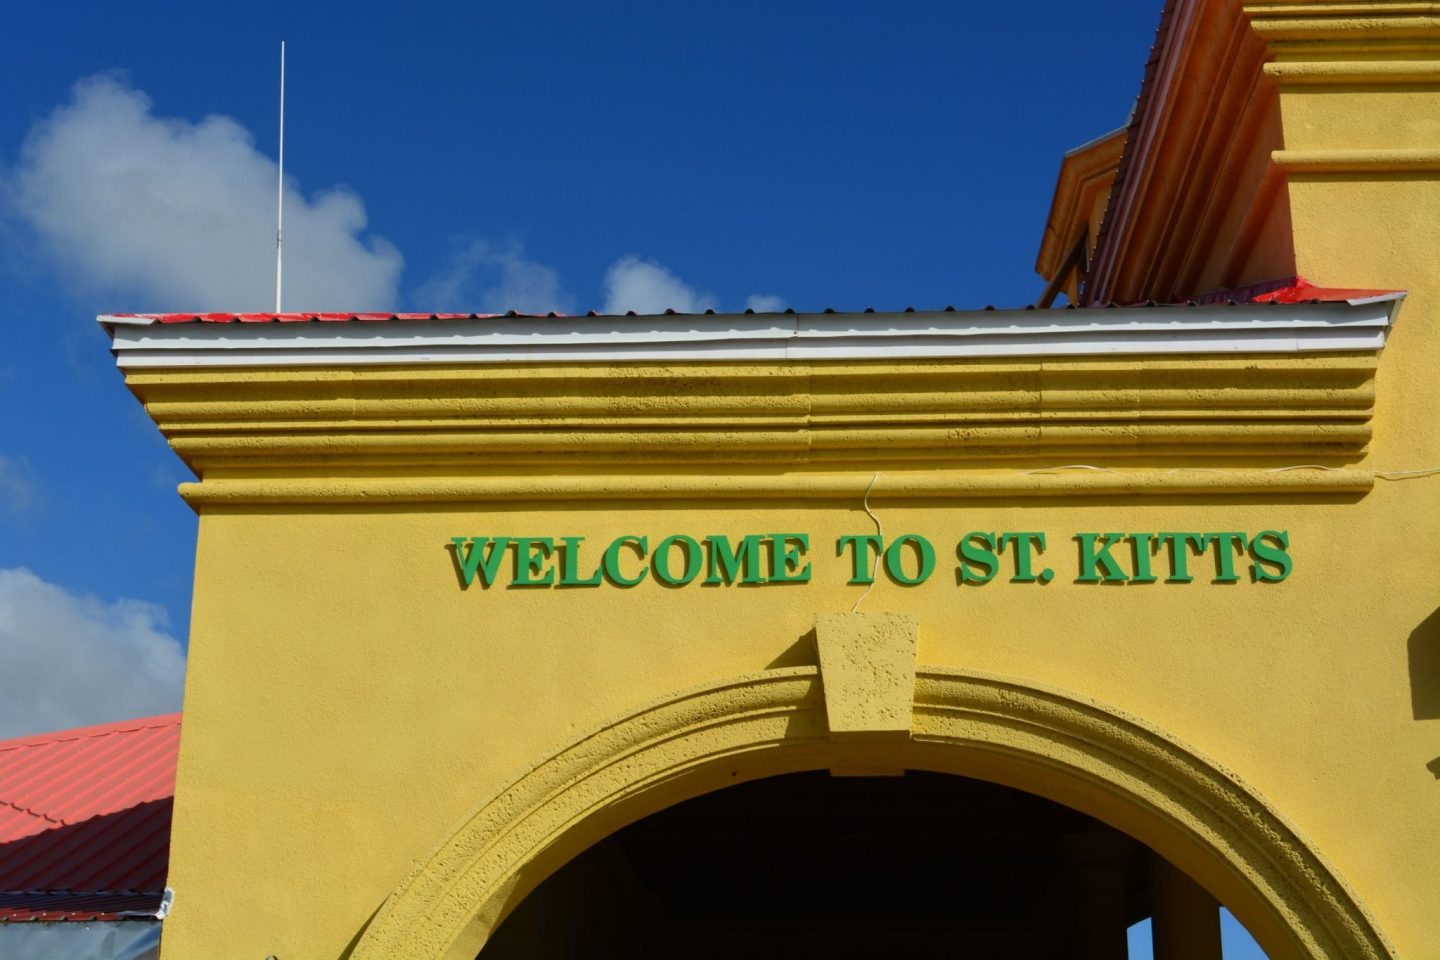 All Aboard the St. Kitts Express!